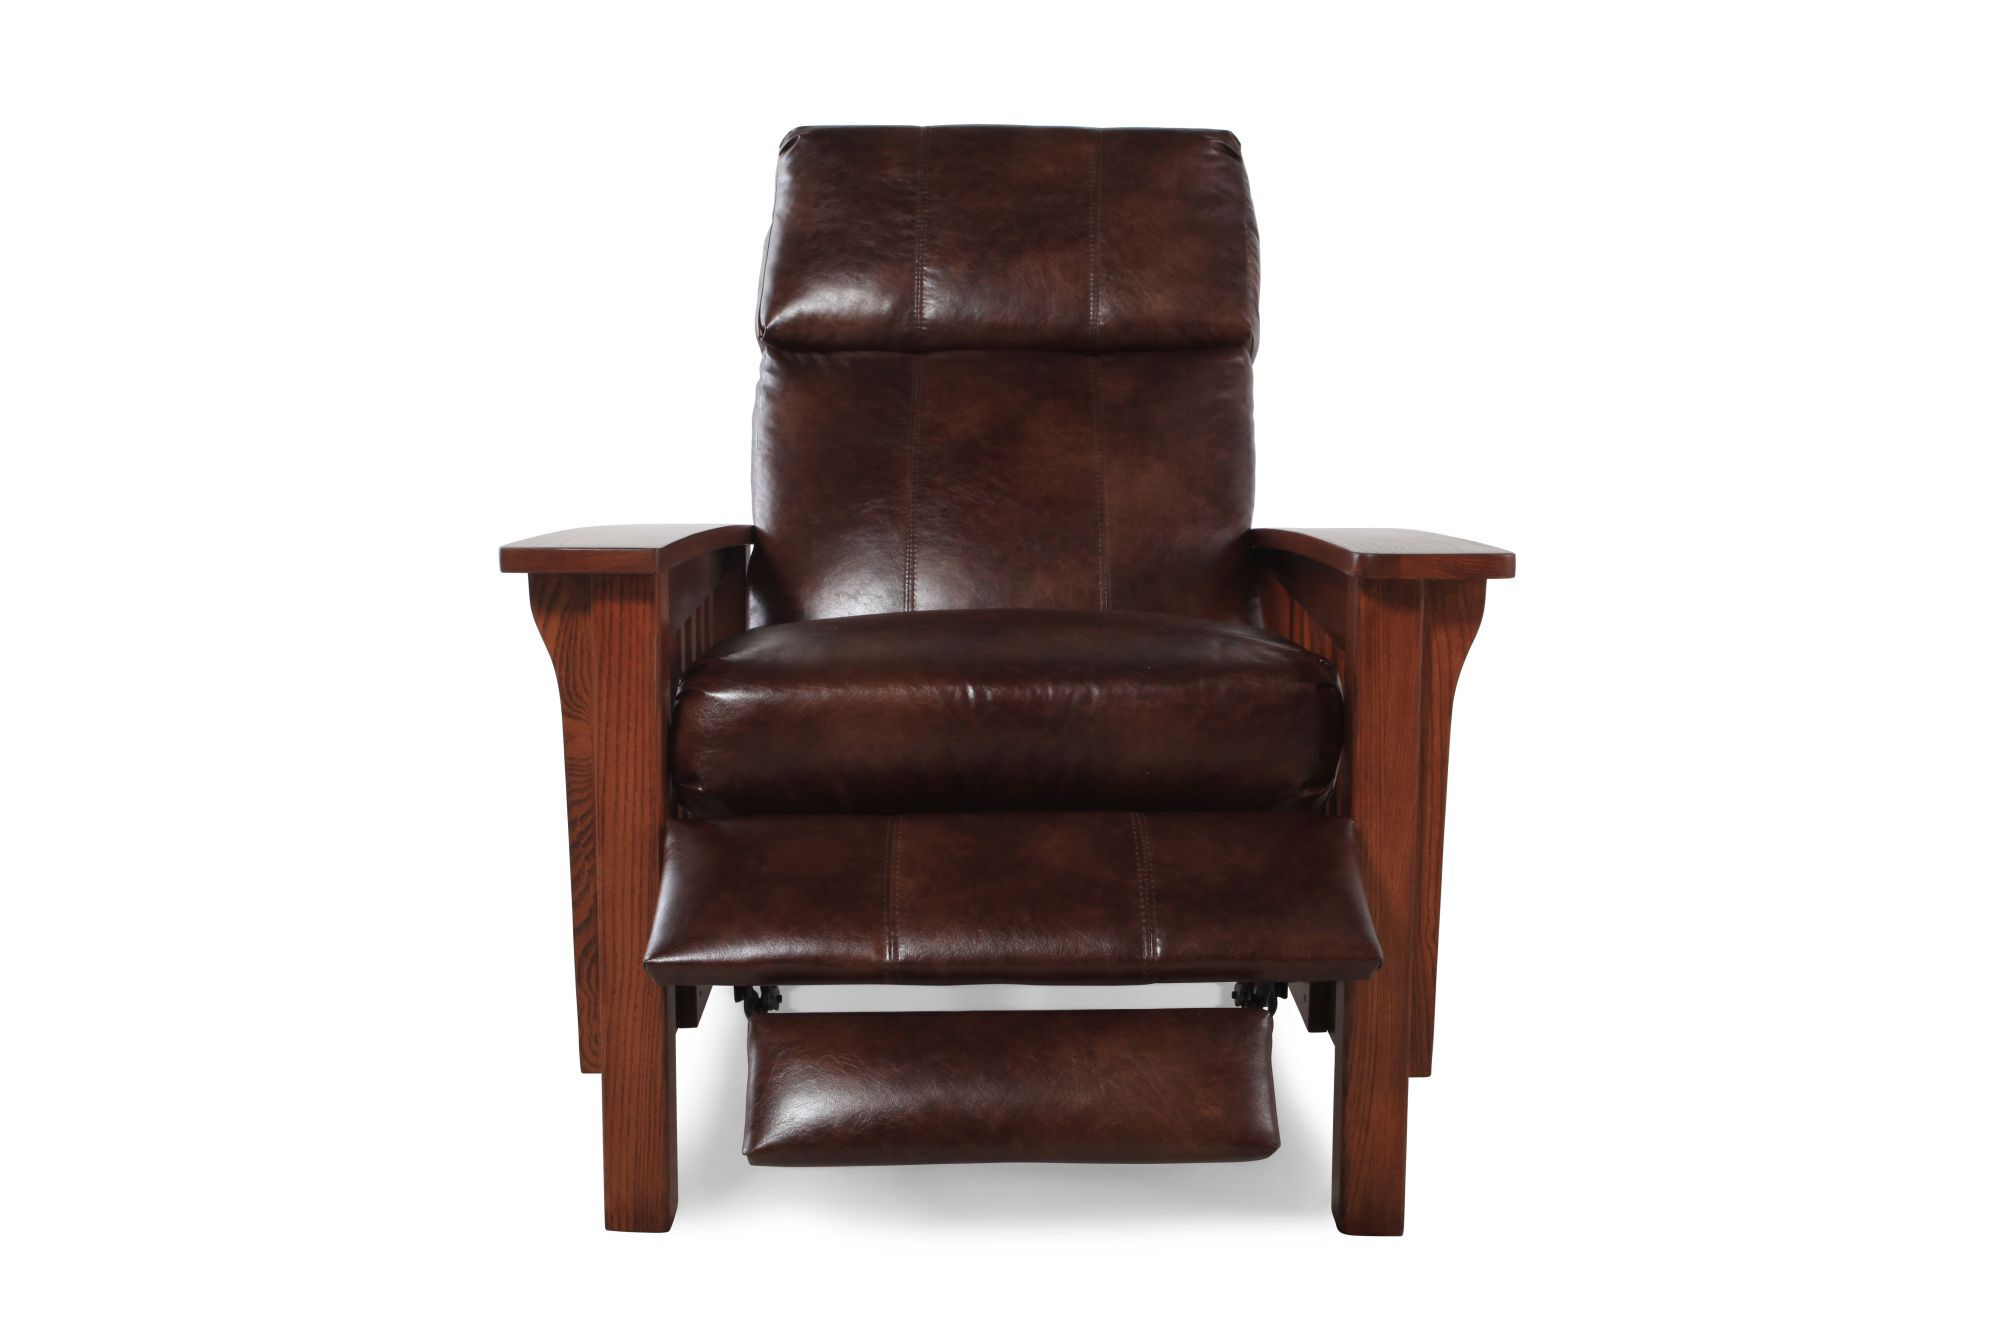 High Leg Bustle Back Recliner In Brown Mathis Brothers Furniture Jpg  1400x933 Brown Leather Chair Mission